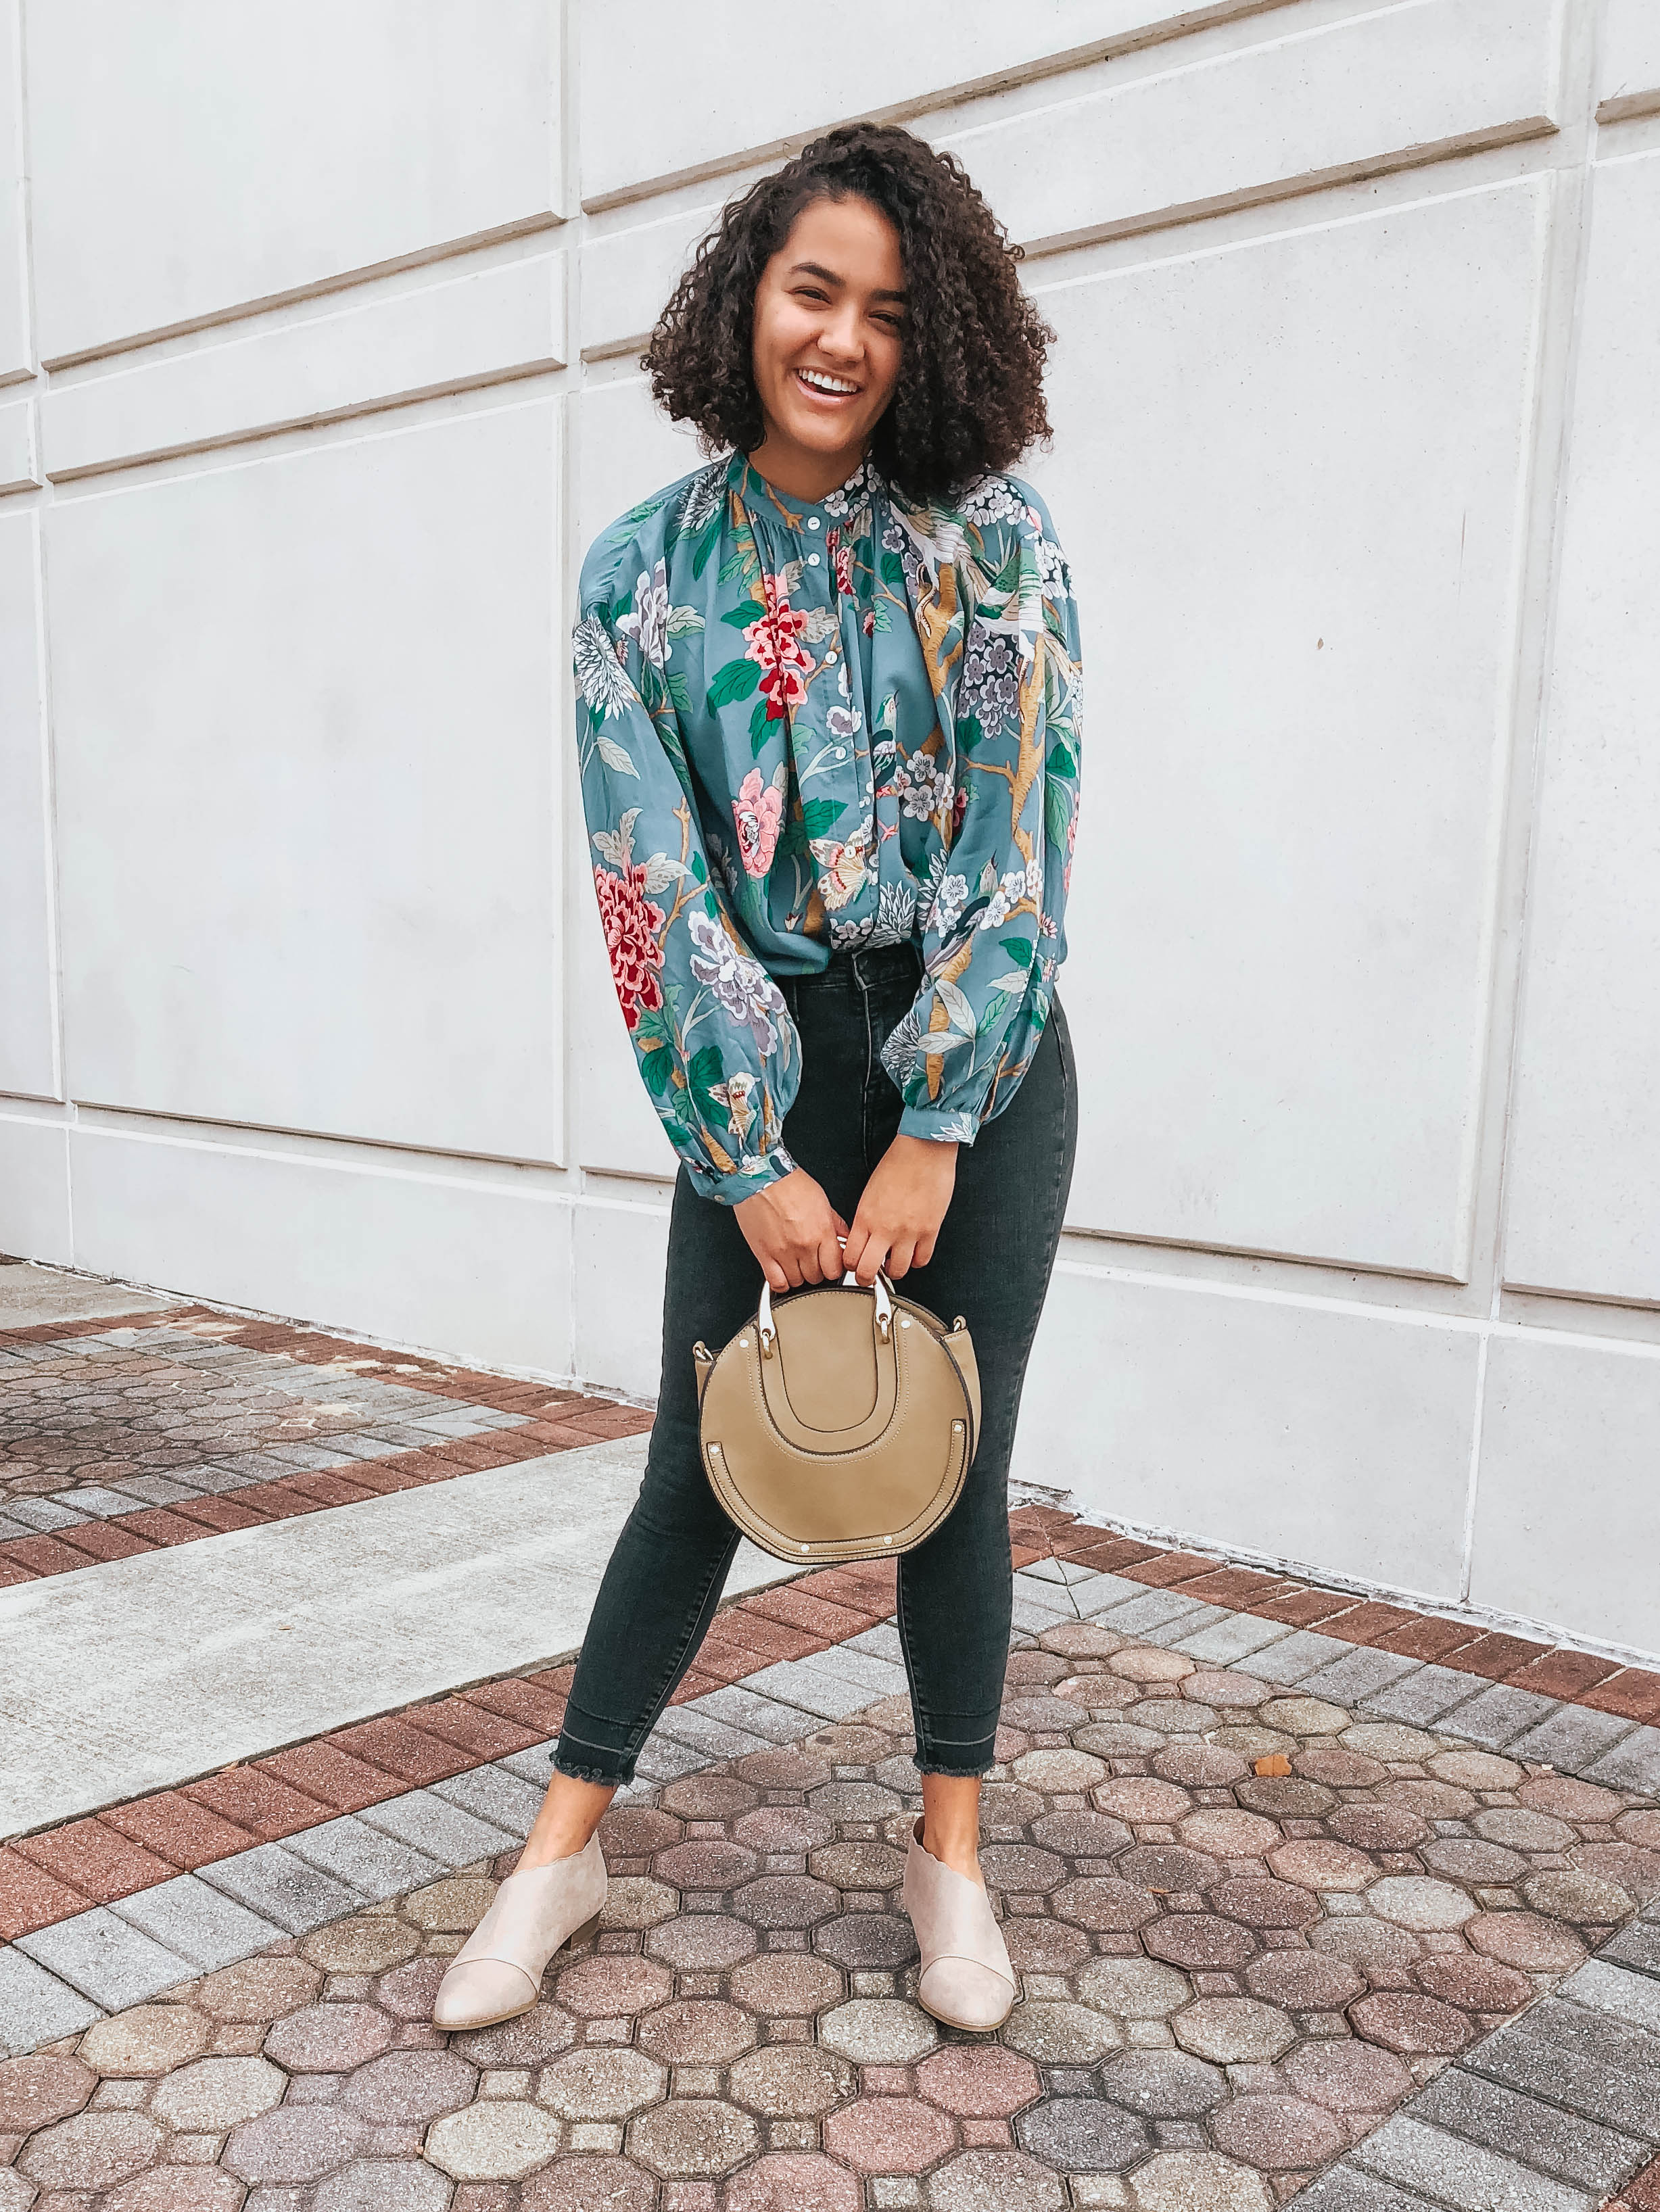 floral-print-top-entourage-winter-style-review